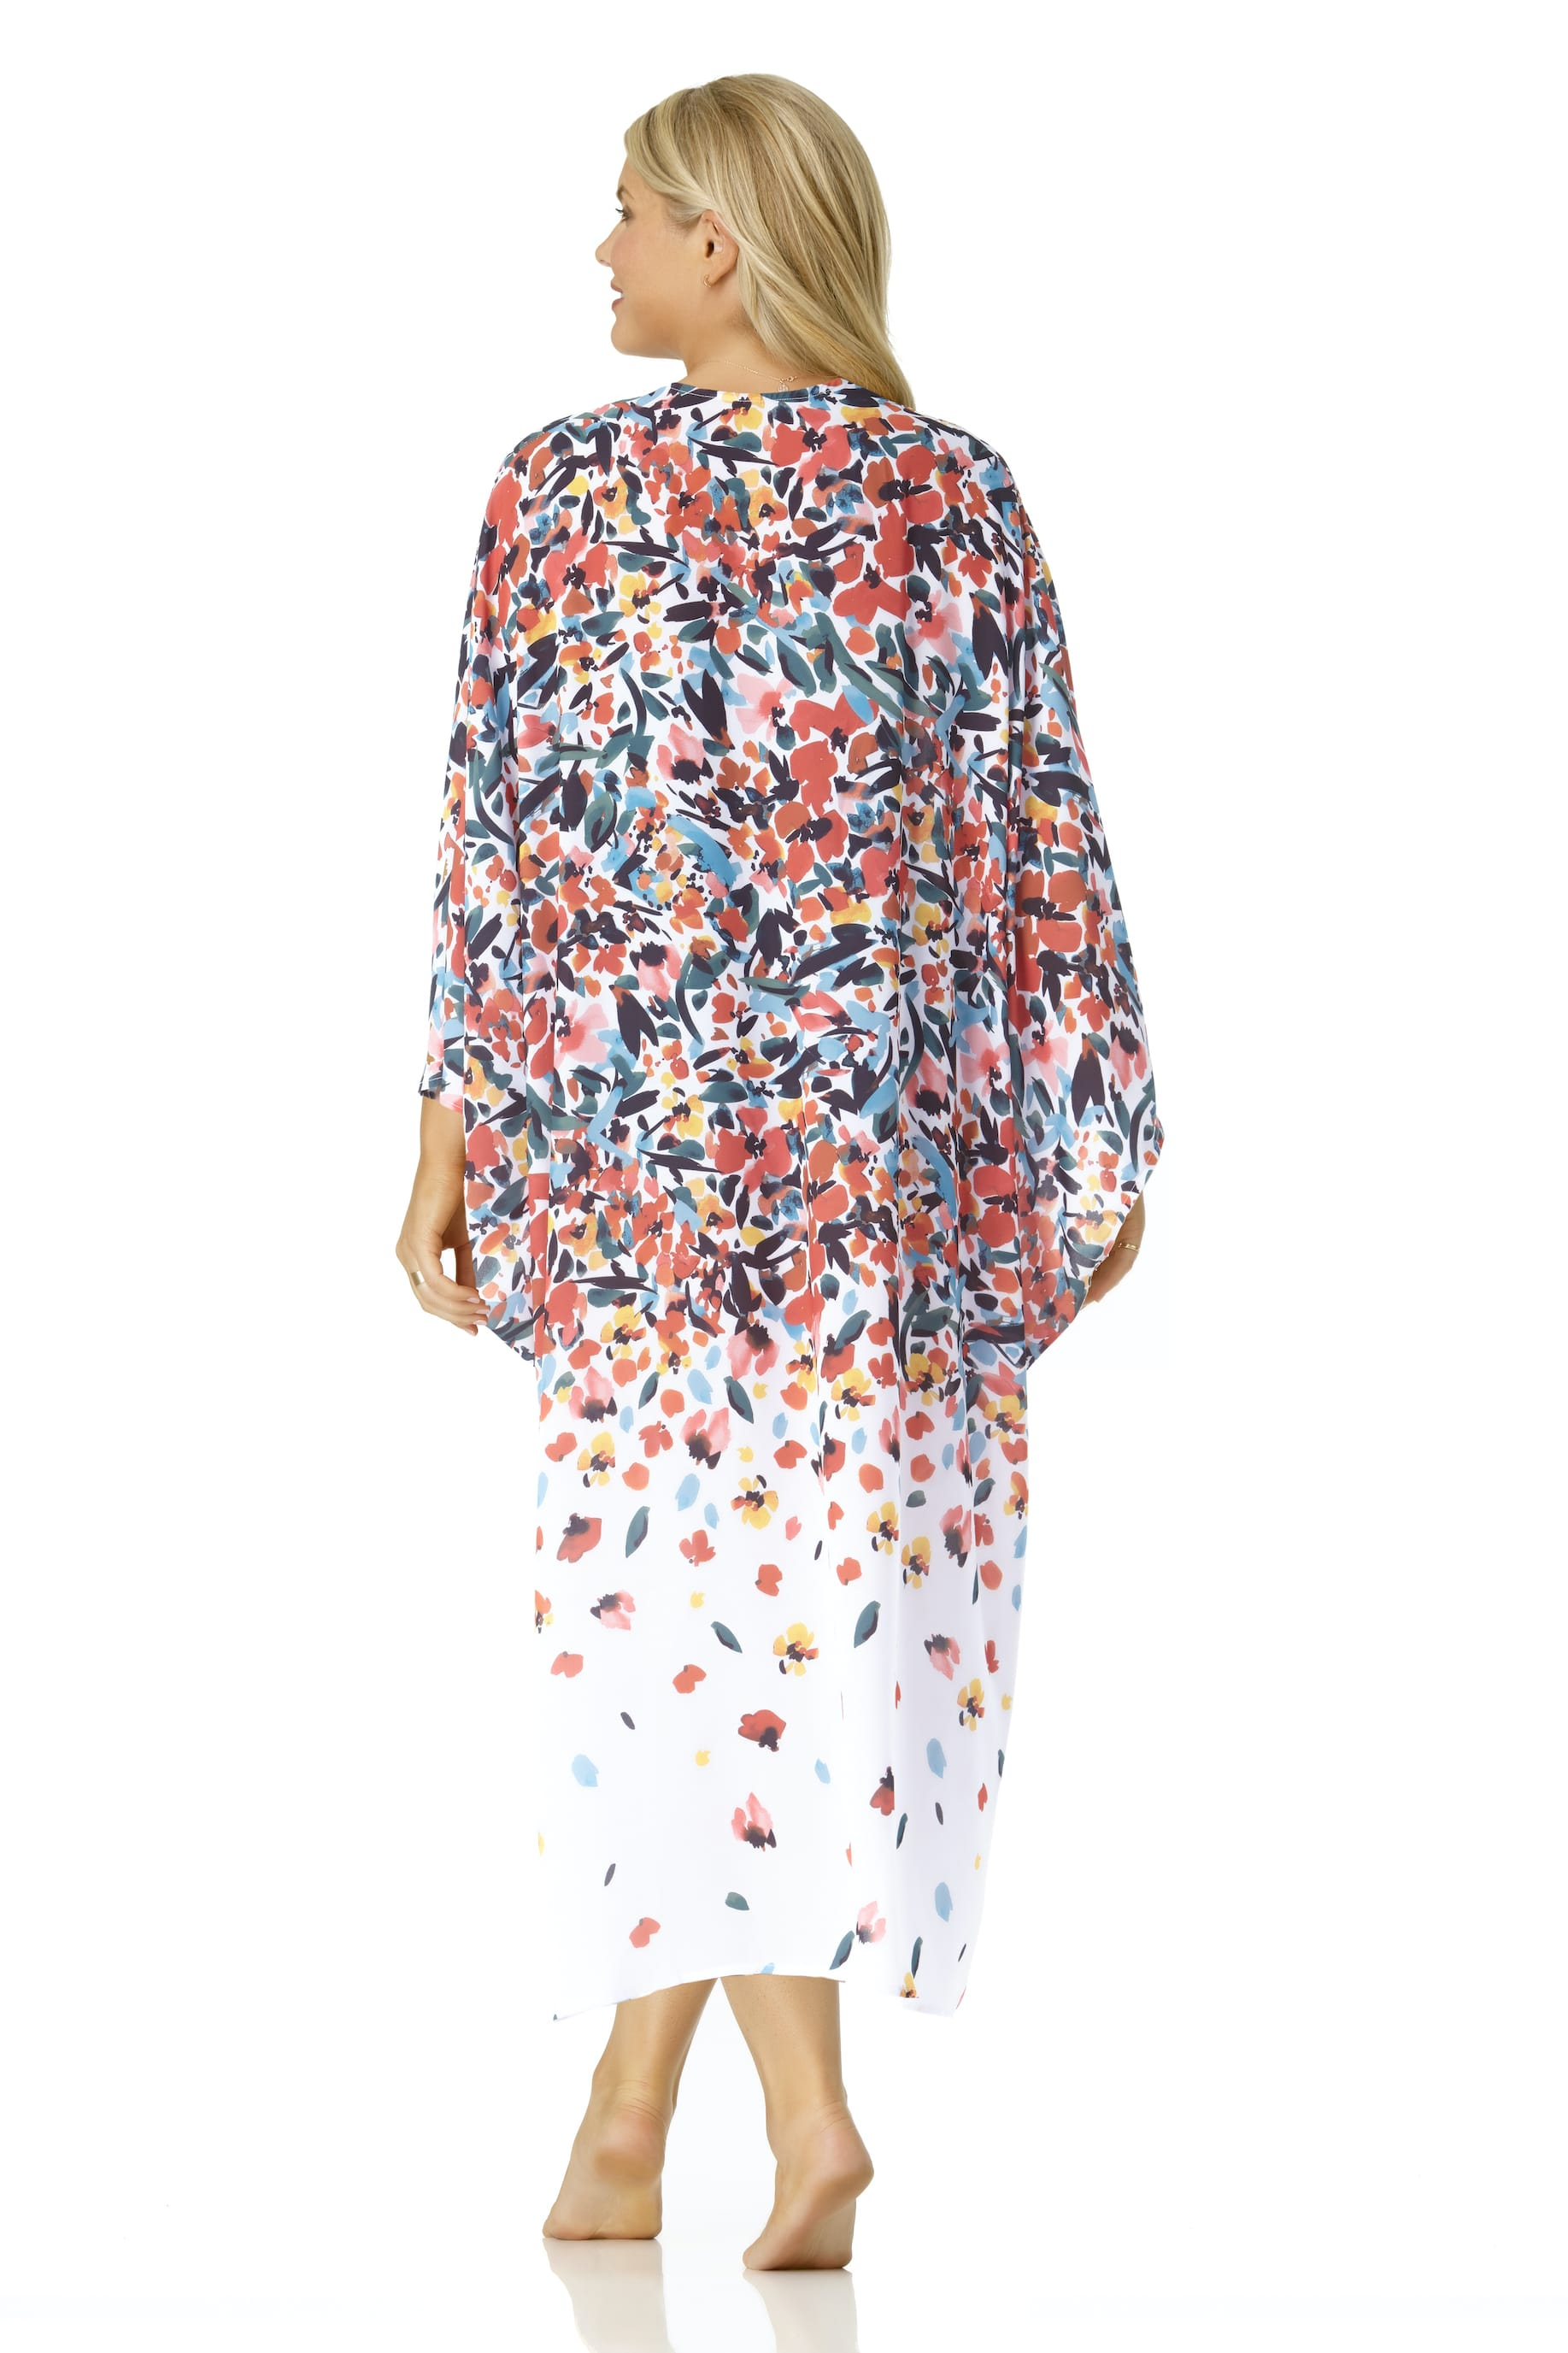 Anne Cole® Sunset Floral Maxi Swimsuit Cover-Up - Multi - Back